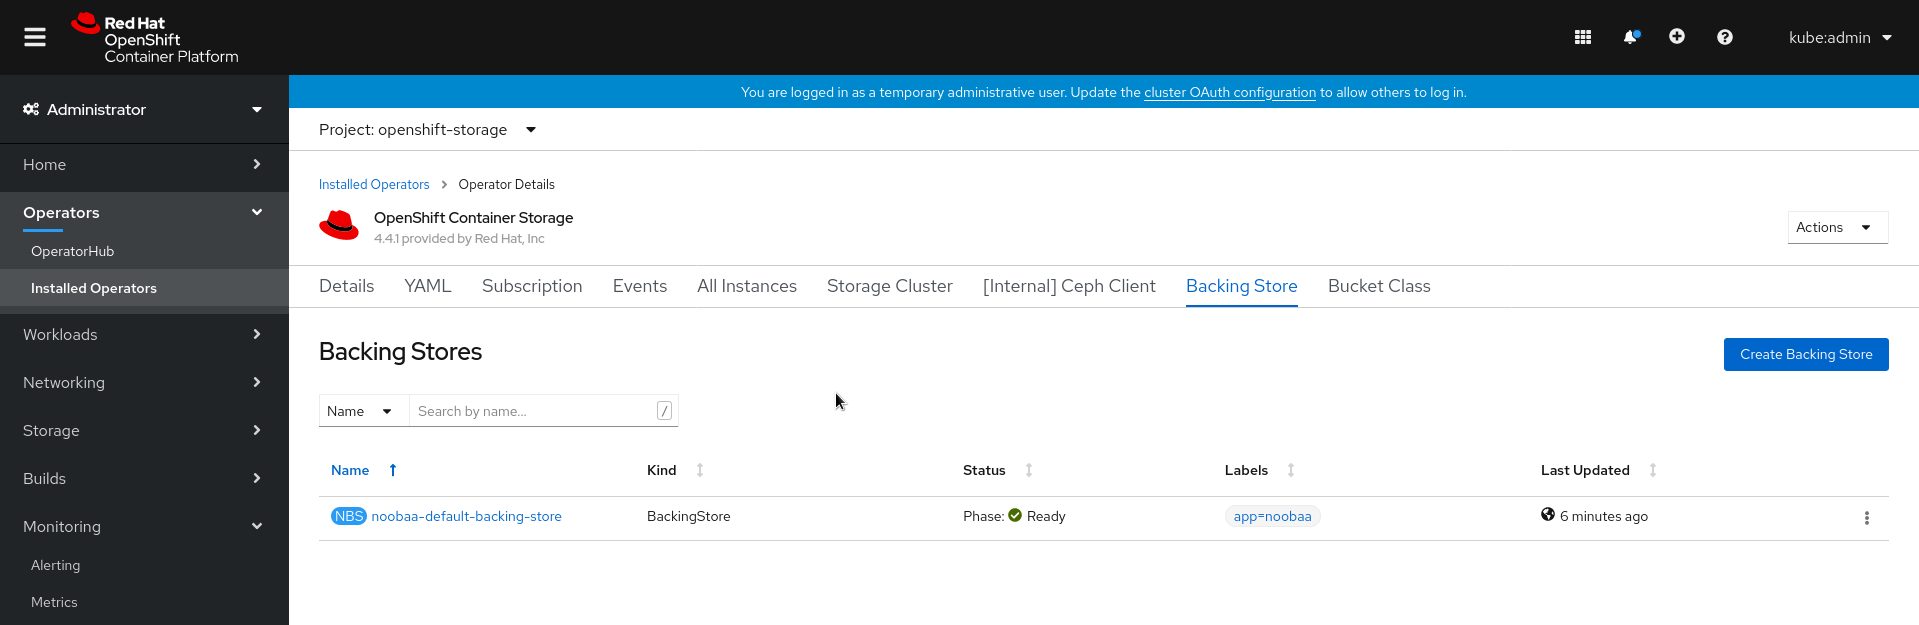 Screenshot of OpenShift Container Storage operator page with backing store tab.